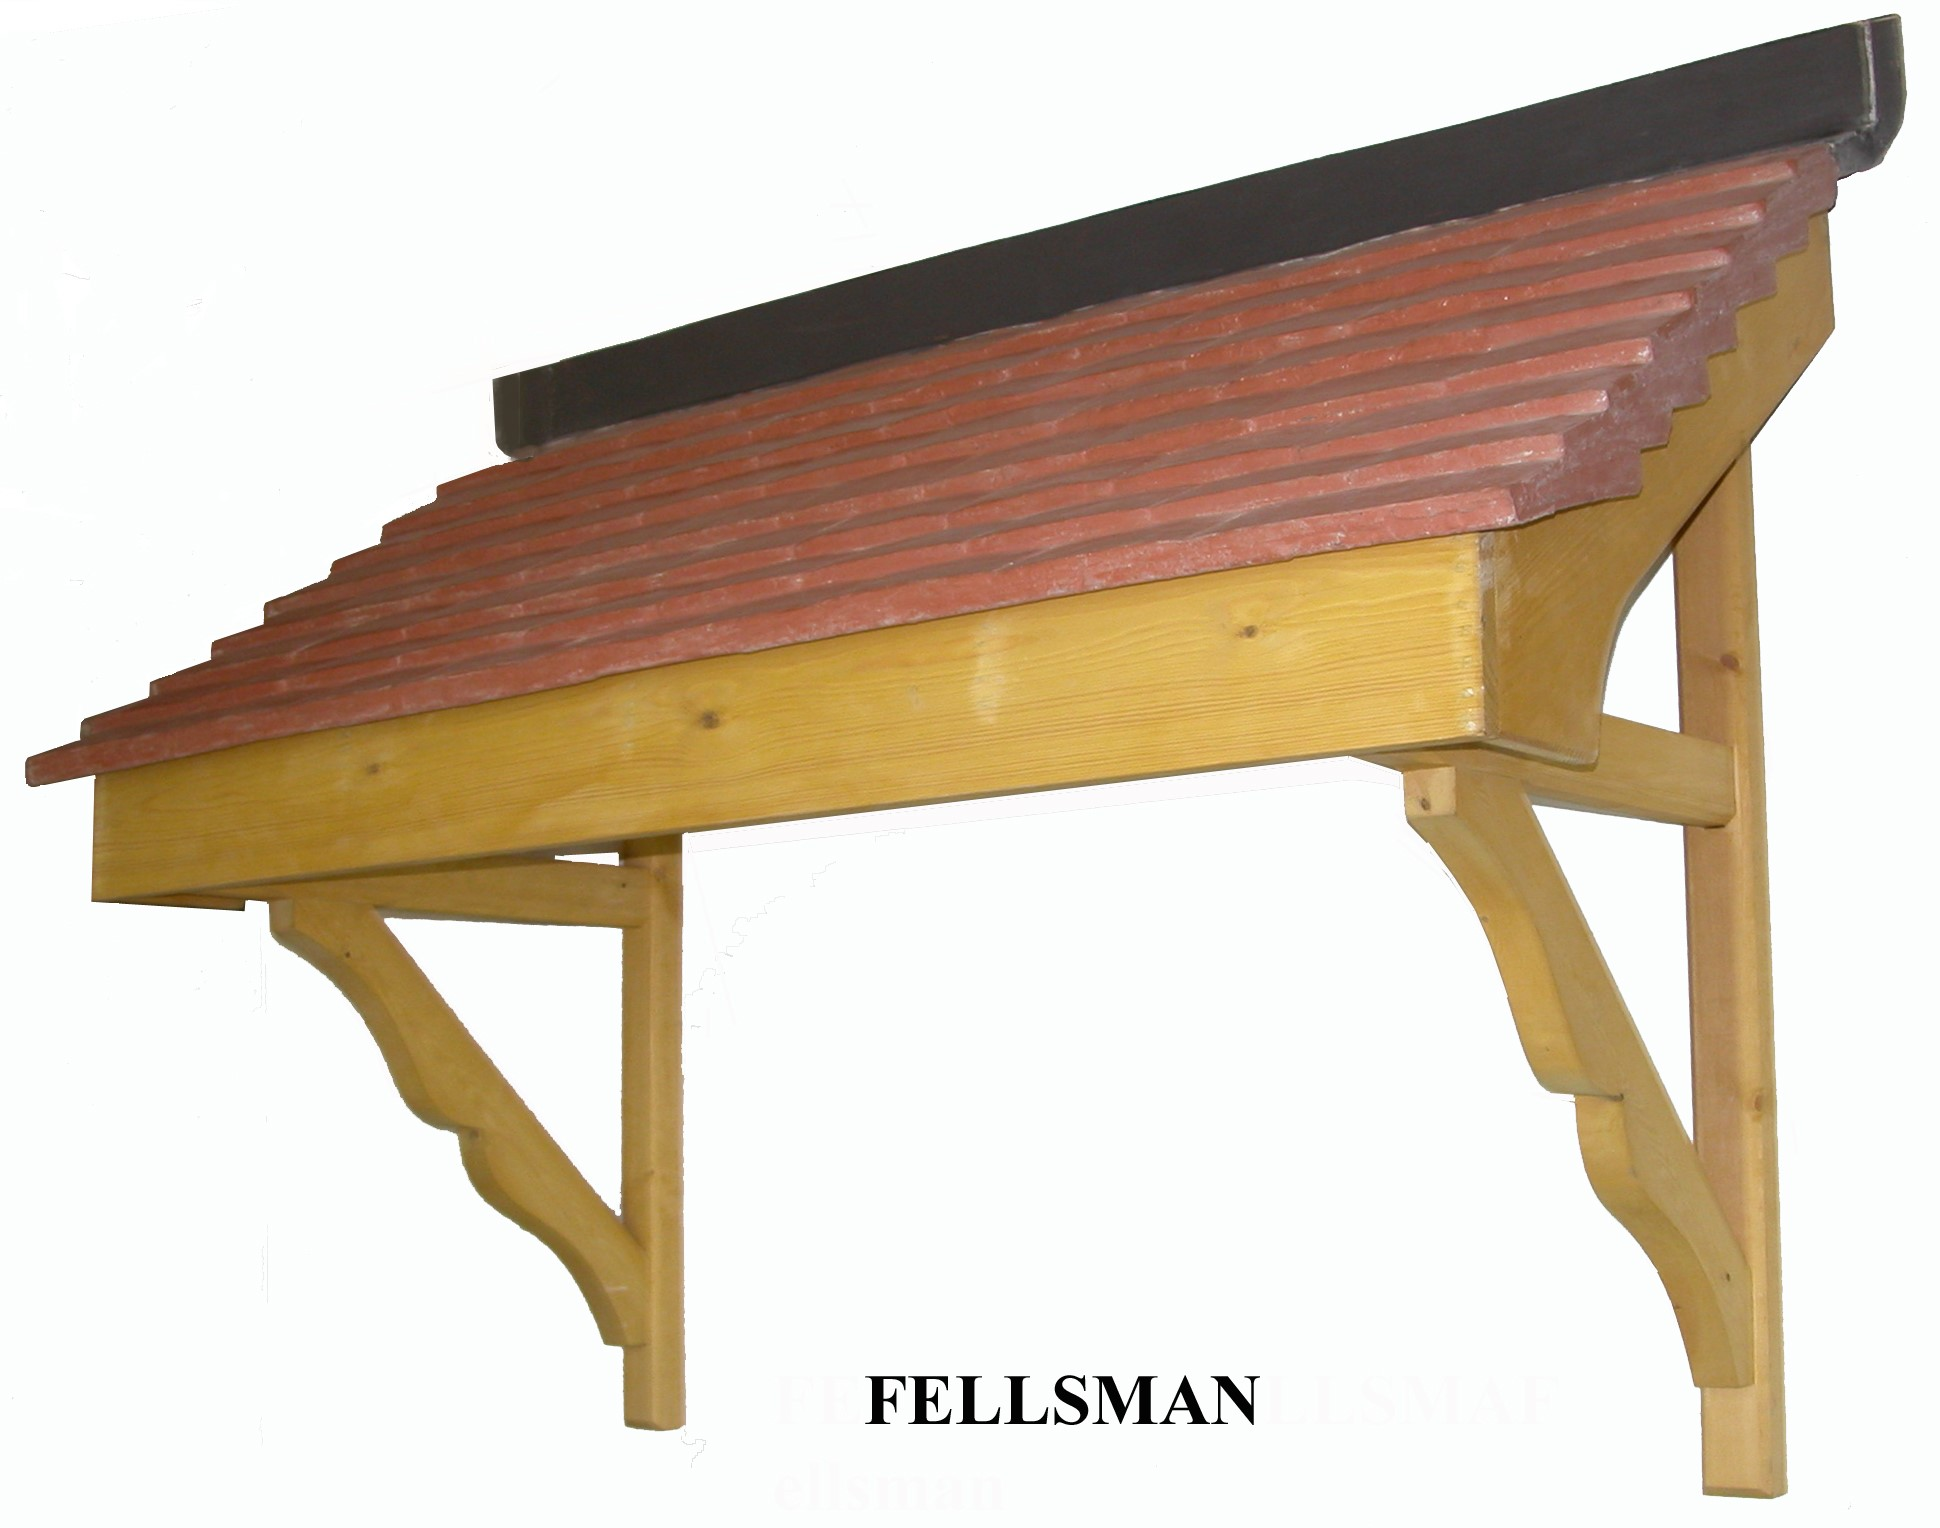 Fellsman mono pitch Durotile roof timber door canopy 1690mm wide, 730mm projection F- FELL-C-S